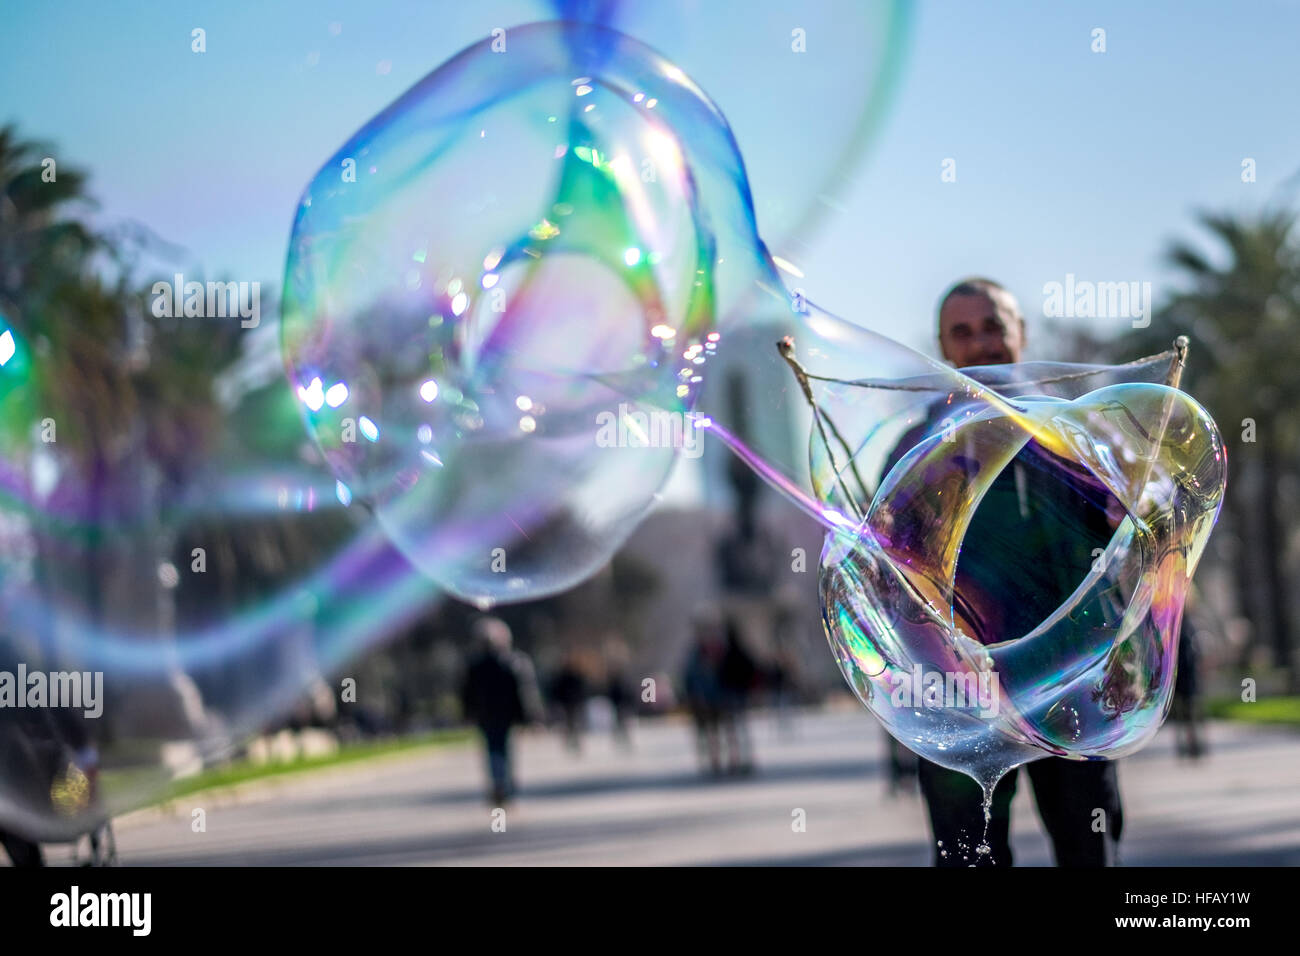 A man makes a huge soap bubble in a park. - Stock Image